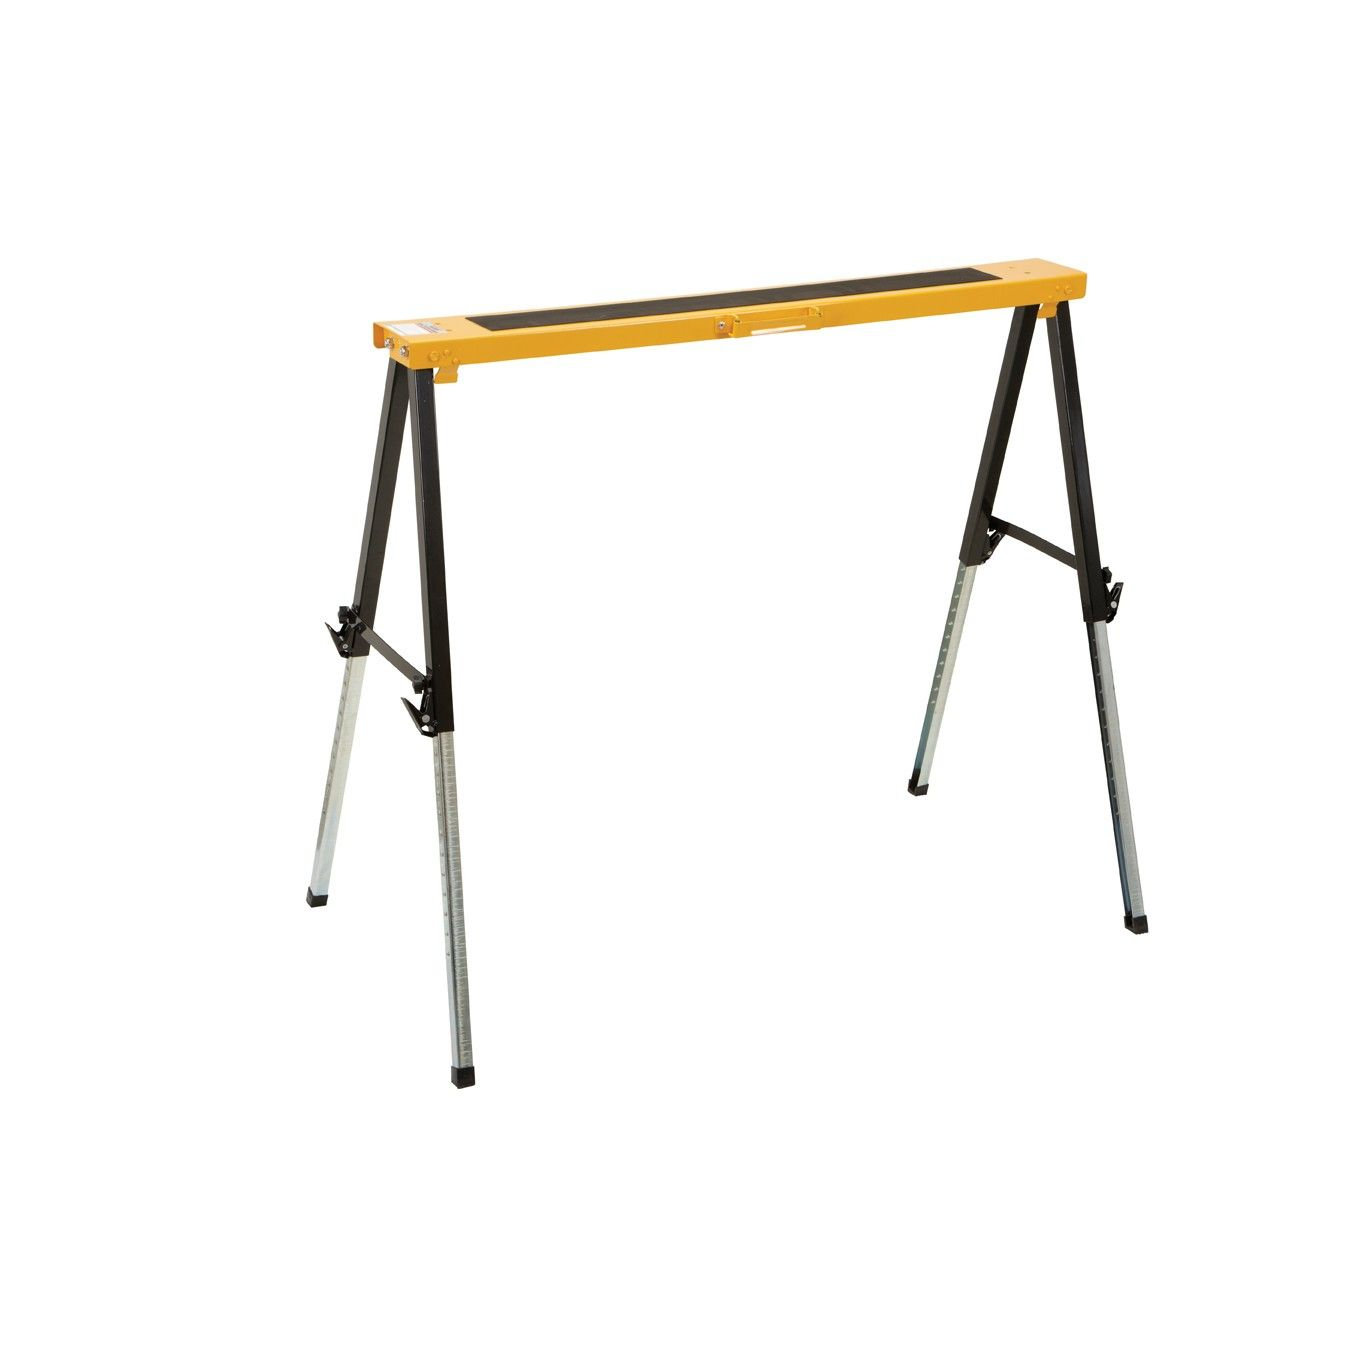 Foldable Adjustable Sawhorse Adjustable Sawhorse Work